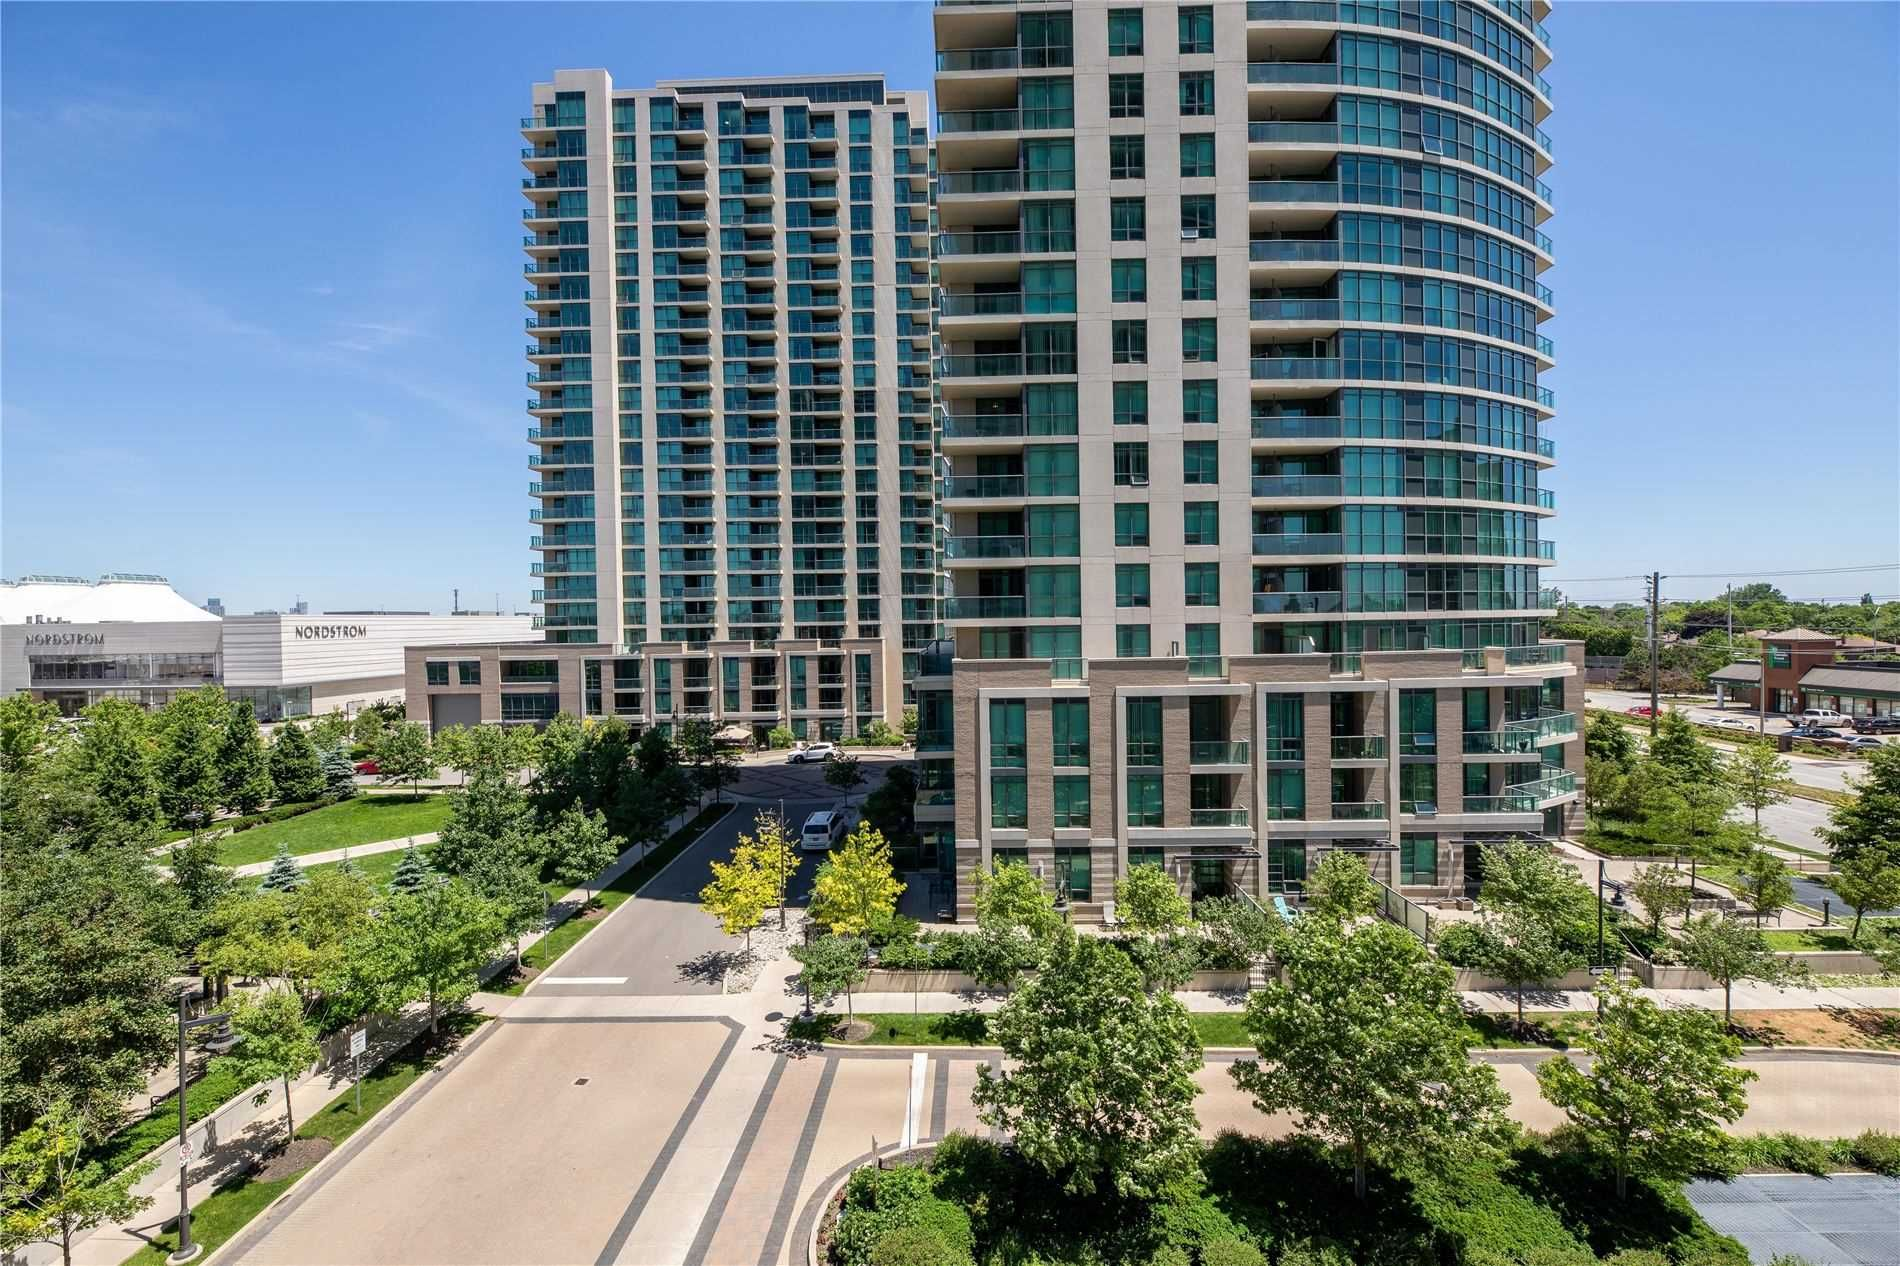 225 Sherway Gardens Rd, unit 505 for sale in Toronto - image #2